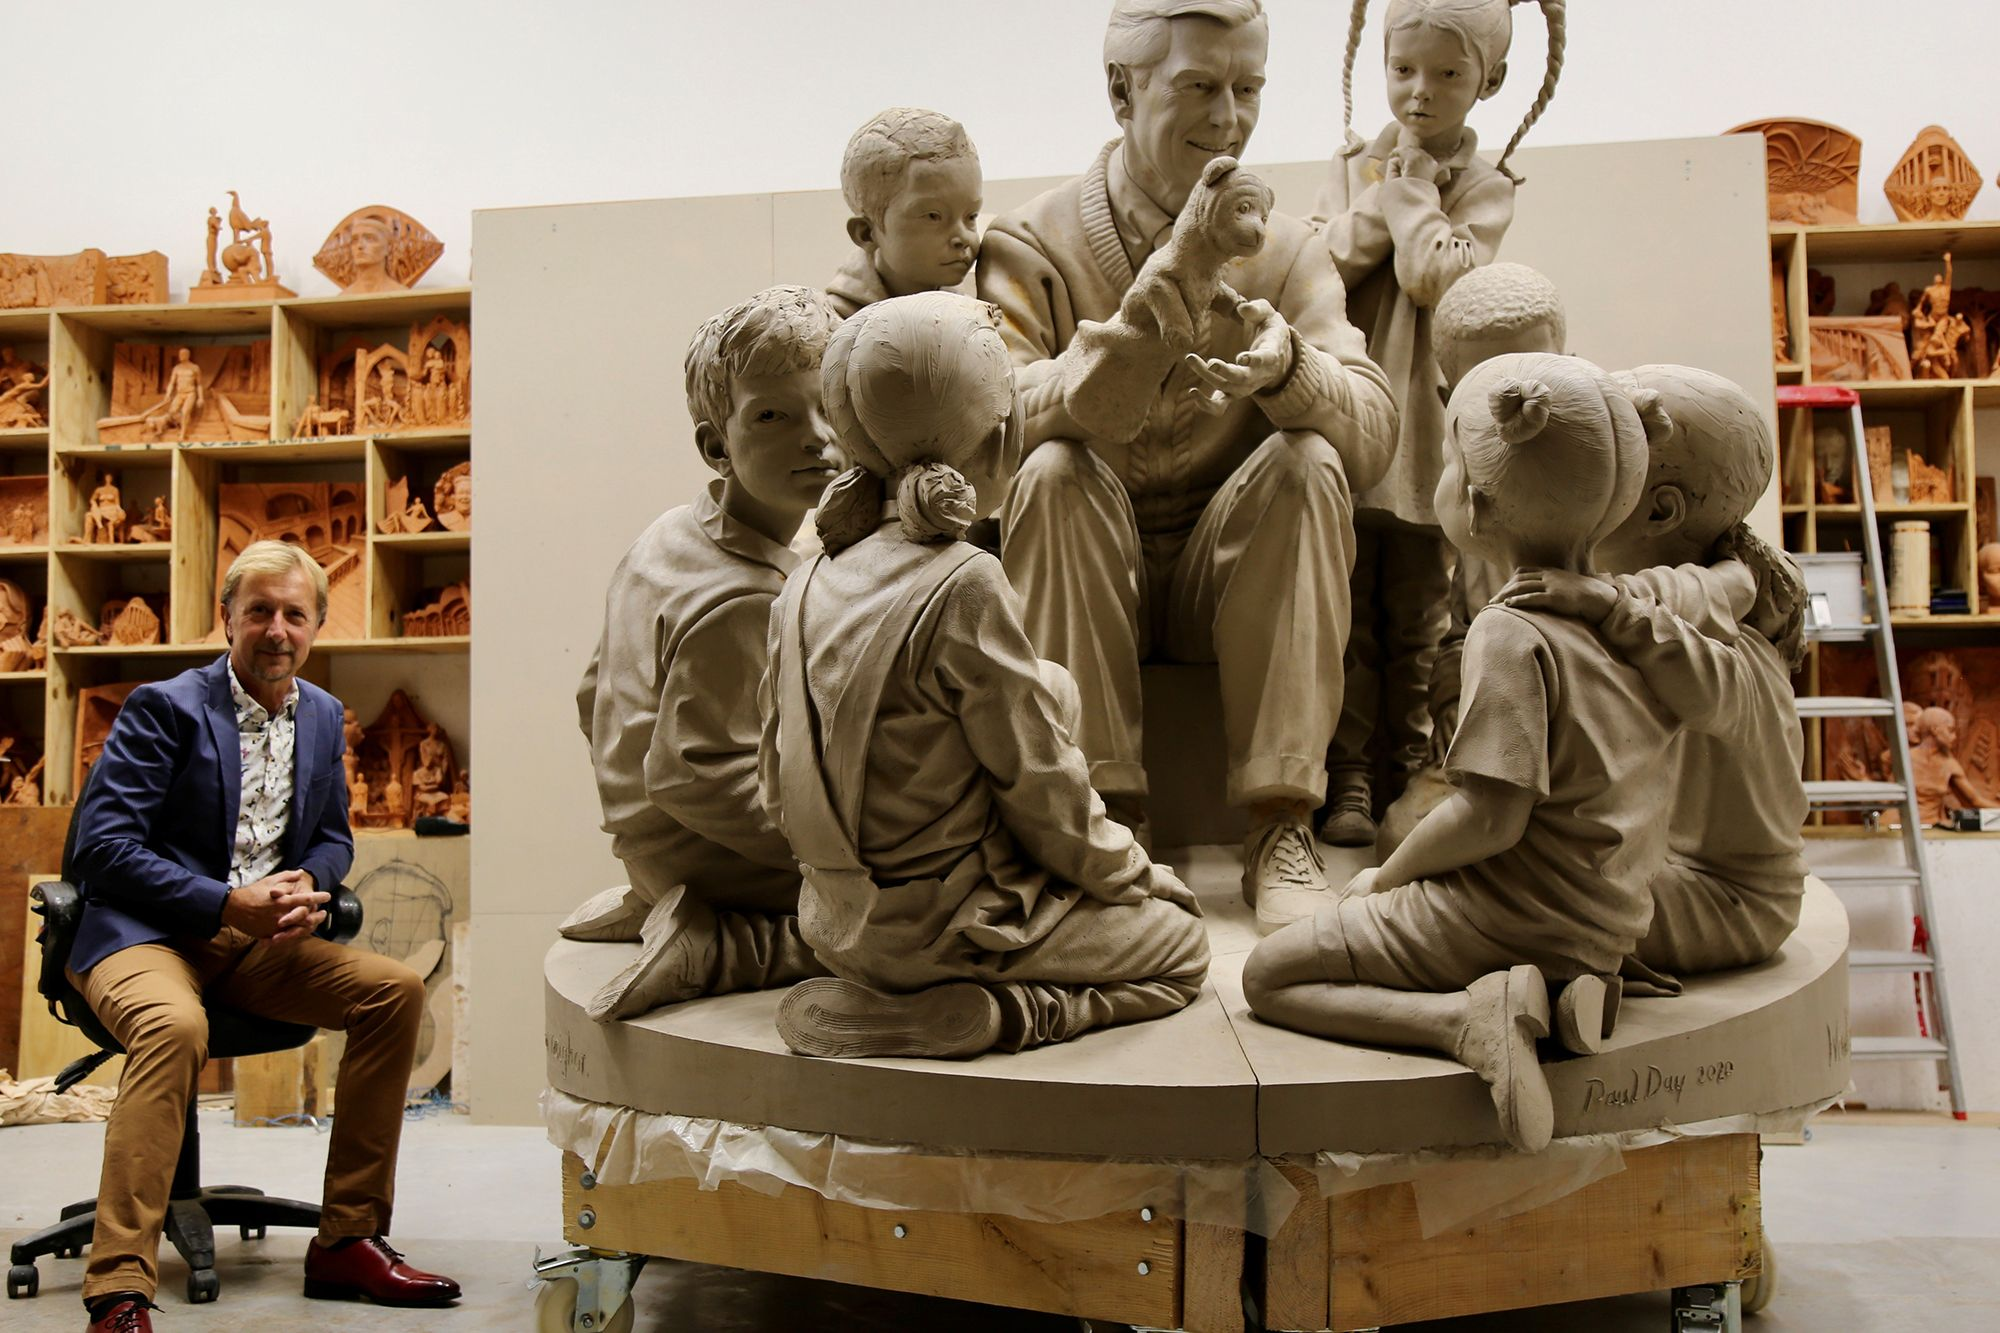 Artist Paul Day pictured next to the sculpture he's creating of Mister Rogers for Rollins College.